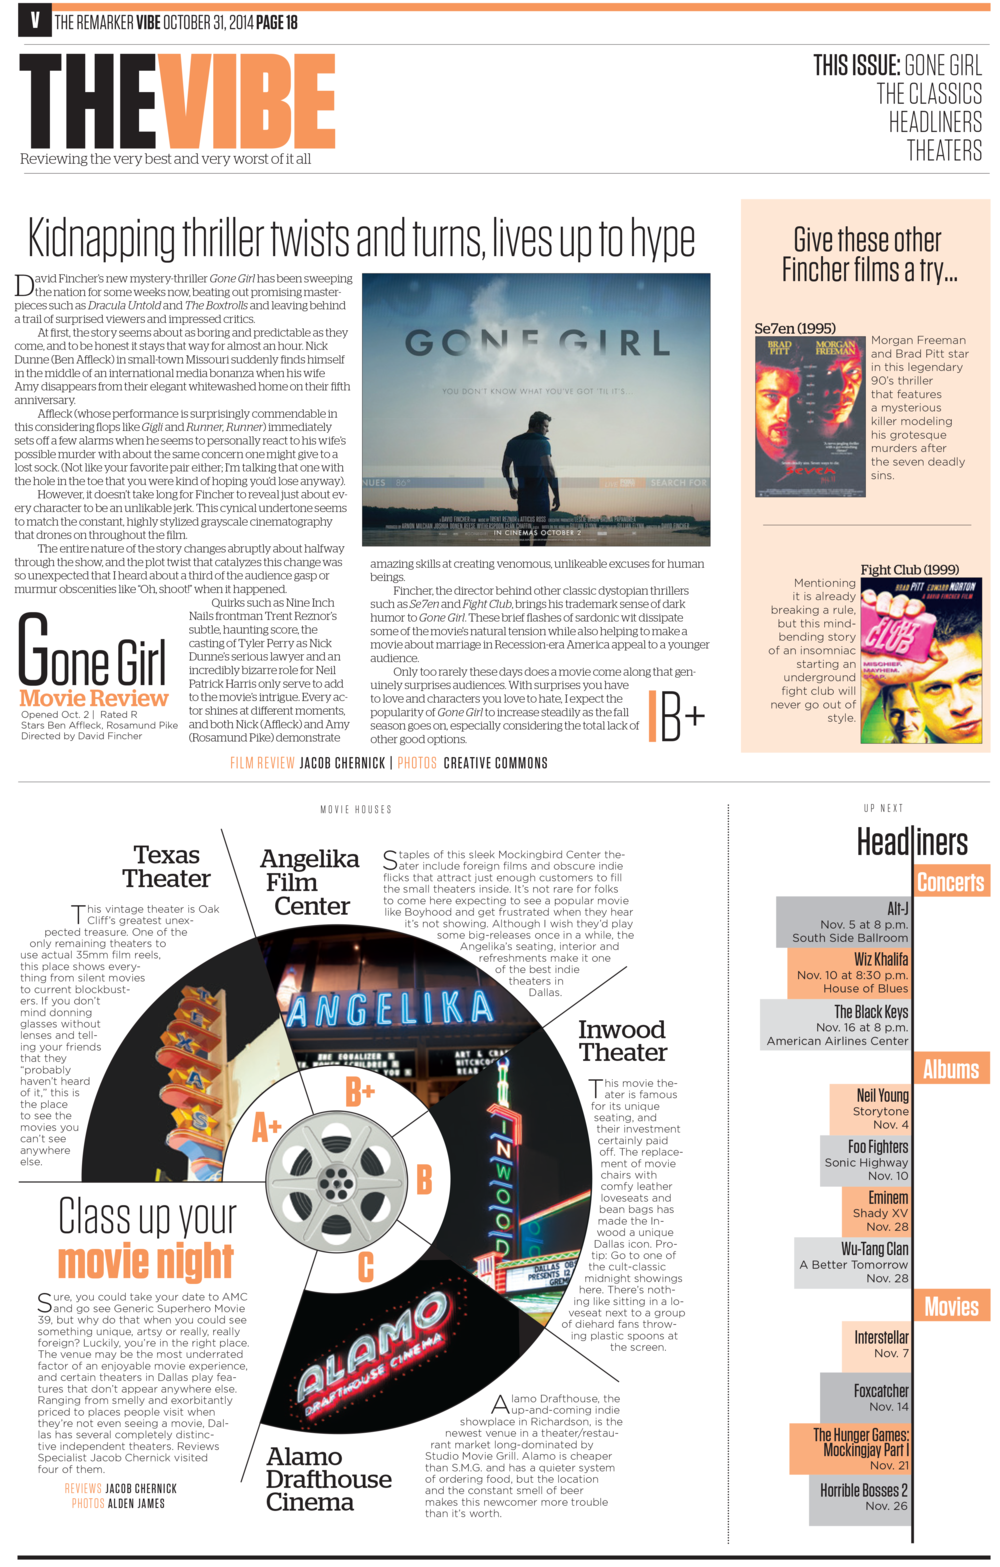 """By using a circle, I compartmentalized the information and played on the movie theme by making the reviews into the shape of a film reel.  This is also the first appearance of """"Headliners,"""" a concept I designed that provided a calendar for upcoming arts and entertainment events.   Part of my portfolio that received 2nd place in CSPA Gold Circle Awards for """"Single Page Design Portfolio."""""""